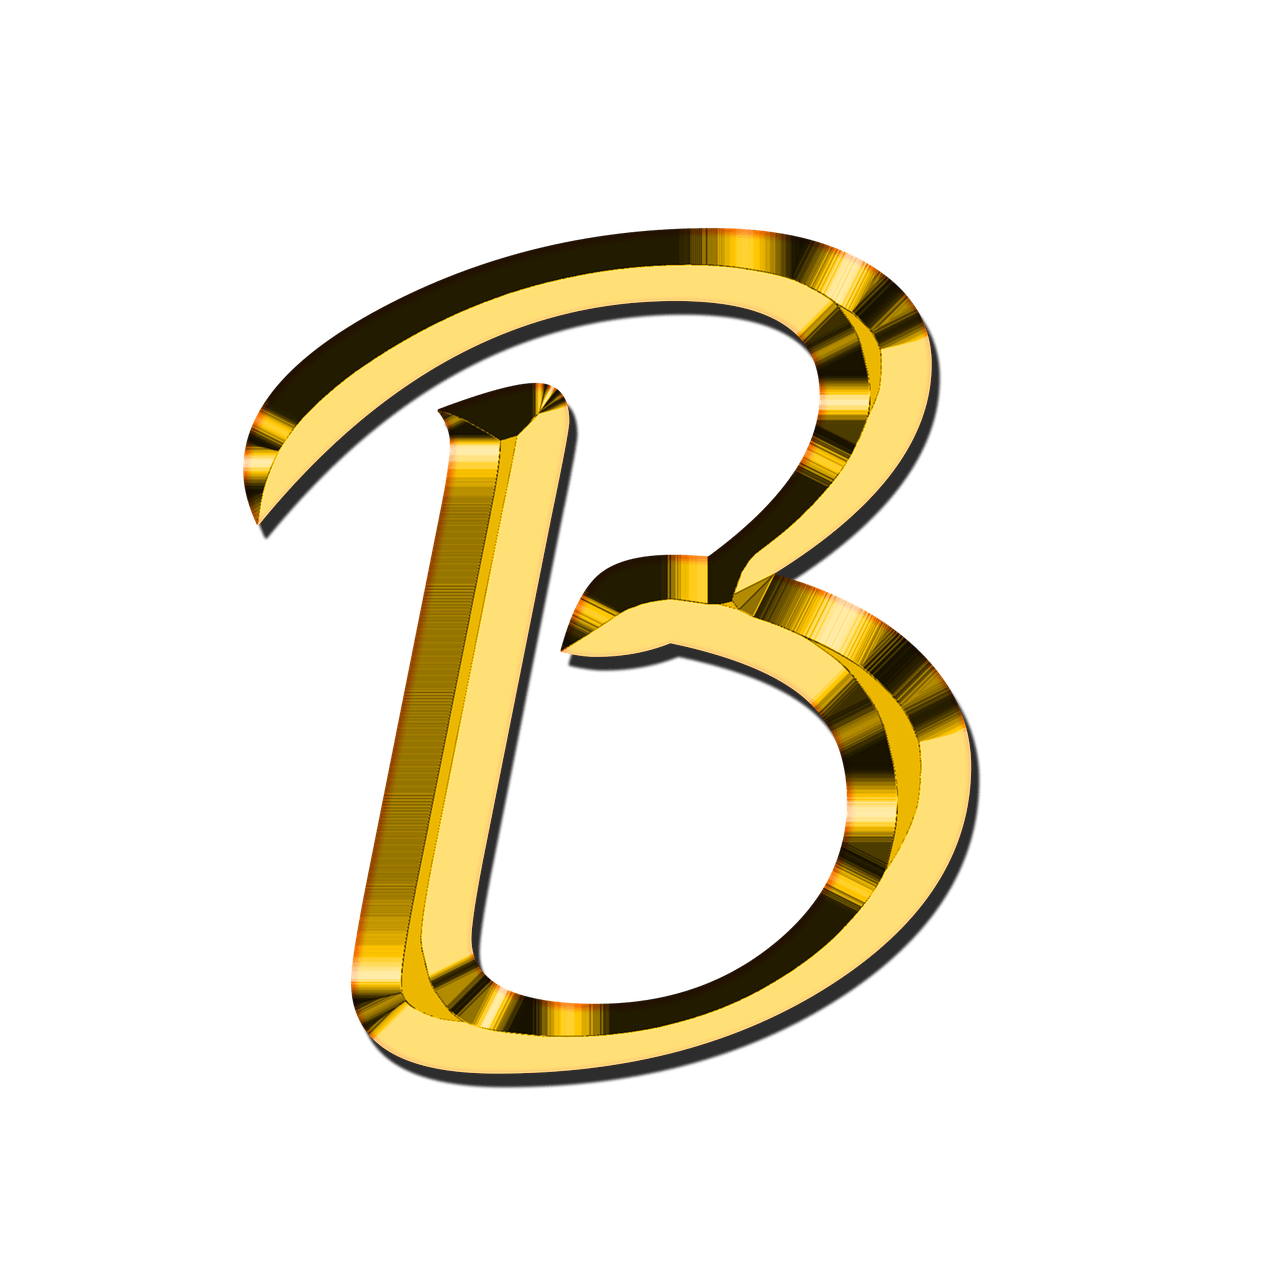 B clipart transparent. Capital letter png stickpng